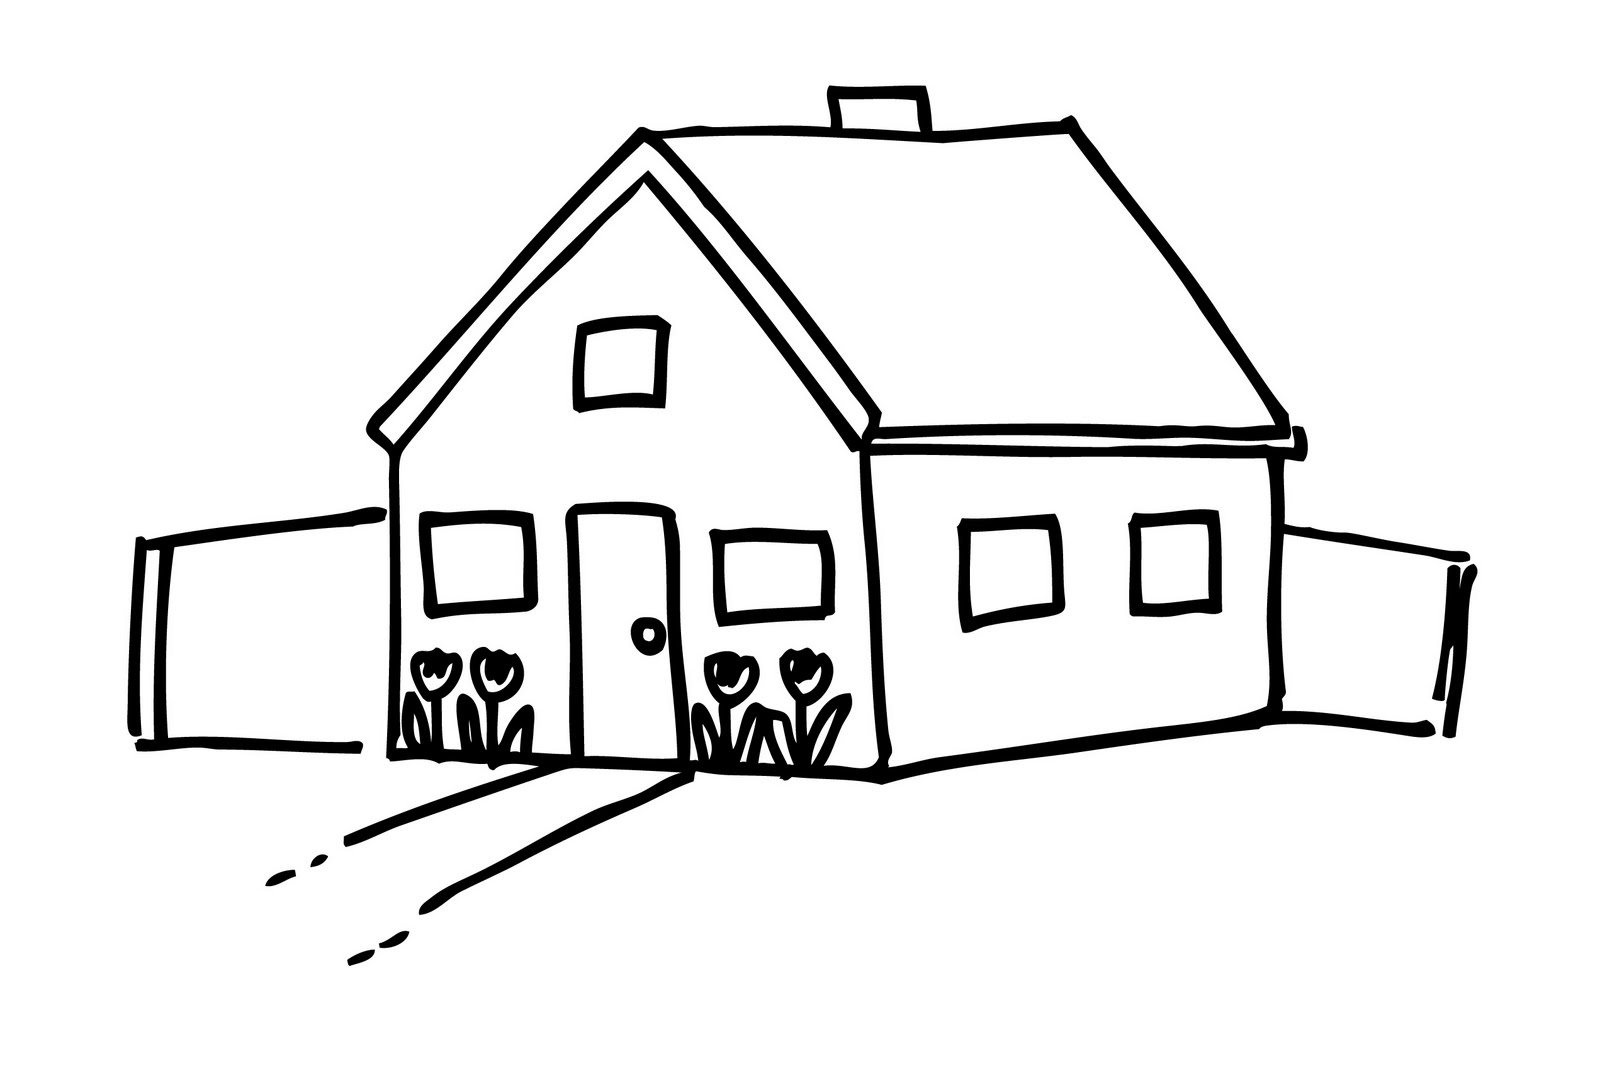 hight resolution of house black and white house clipart black and white 5